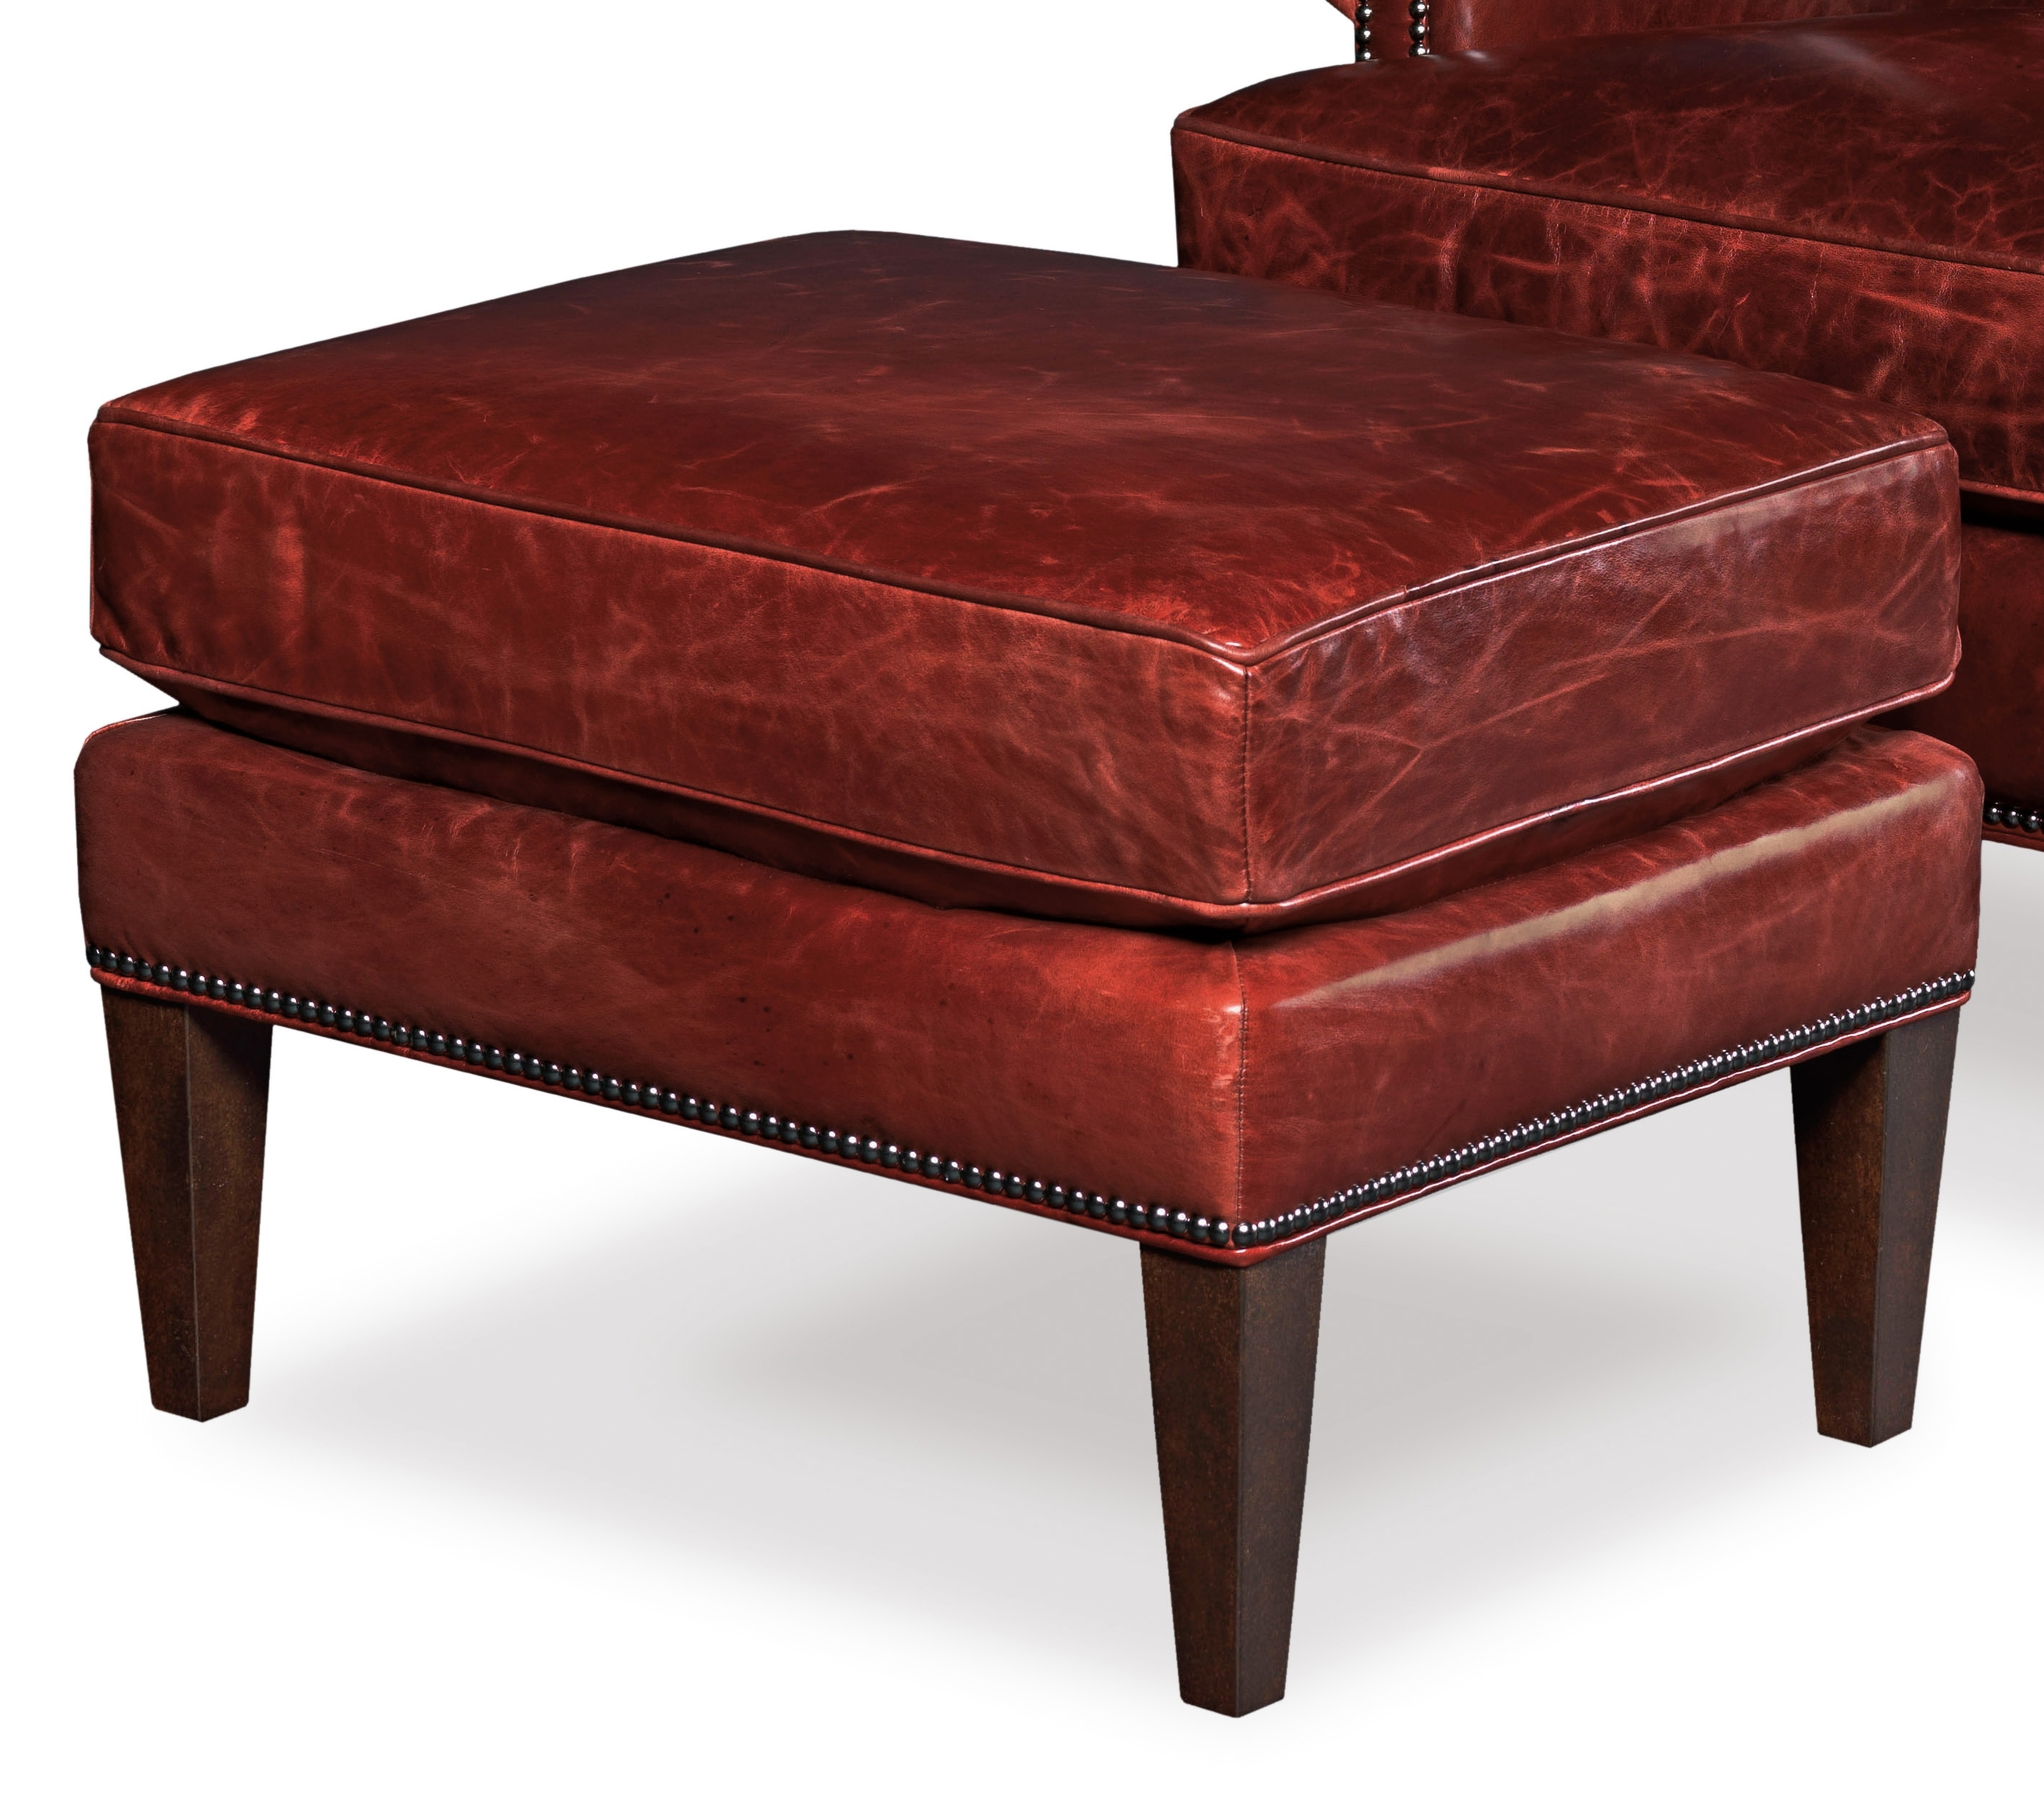 Hooker Furniture Club Chairs Ottoman With Nailhead Trim – Olinde's With Regard To Favorite Chairs With Ottoman (View 18 of 20)